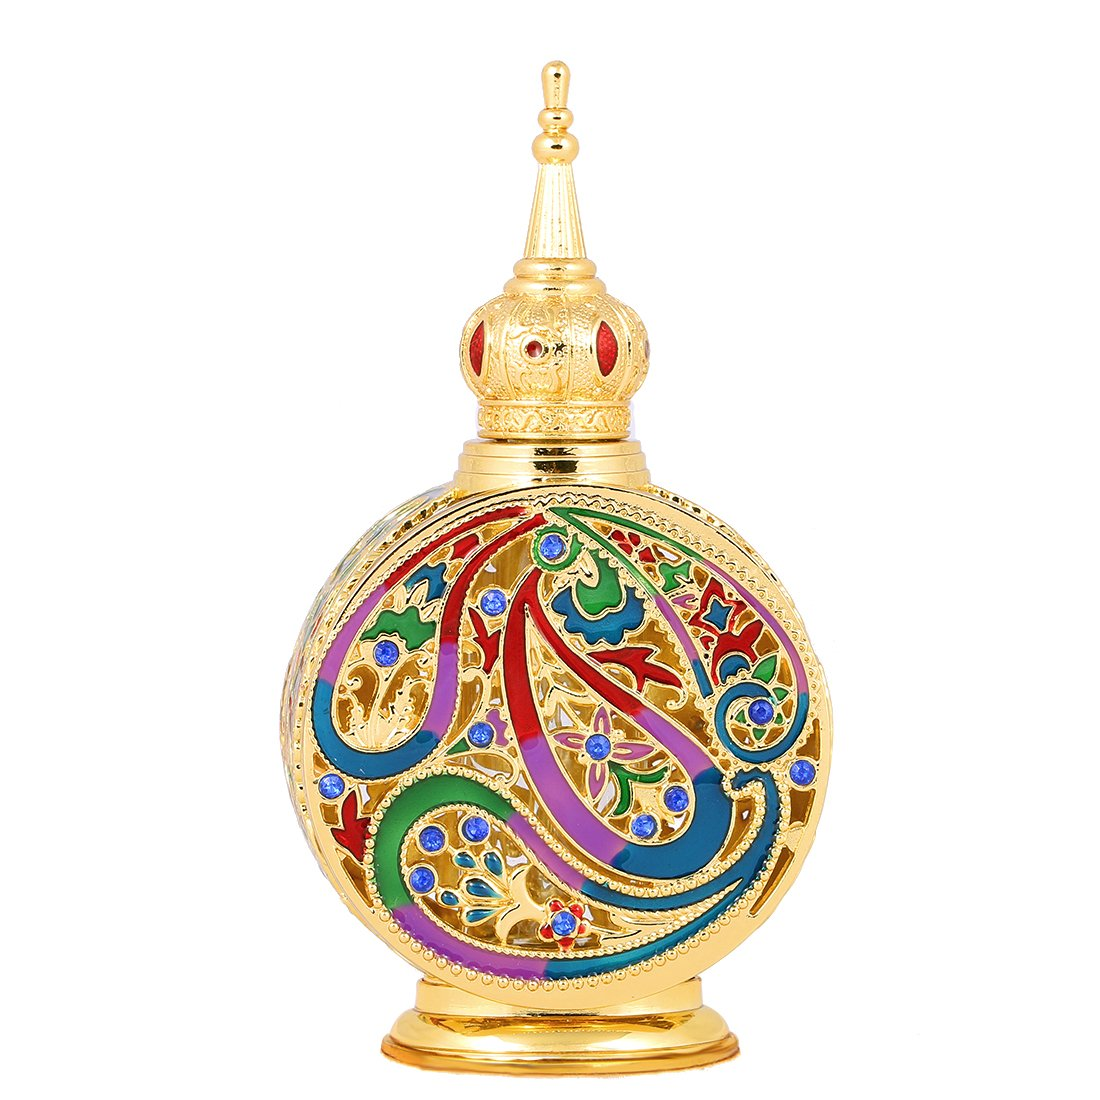 H&D Vintage 18ml Empty Refillable Egyptian Style Enameled Metal and Glass Perfume Bottle 0